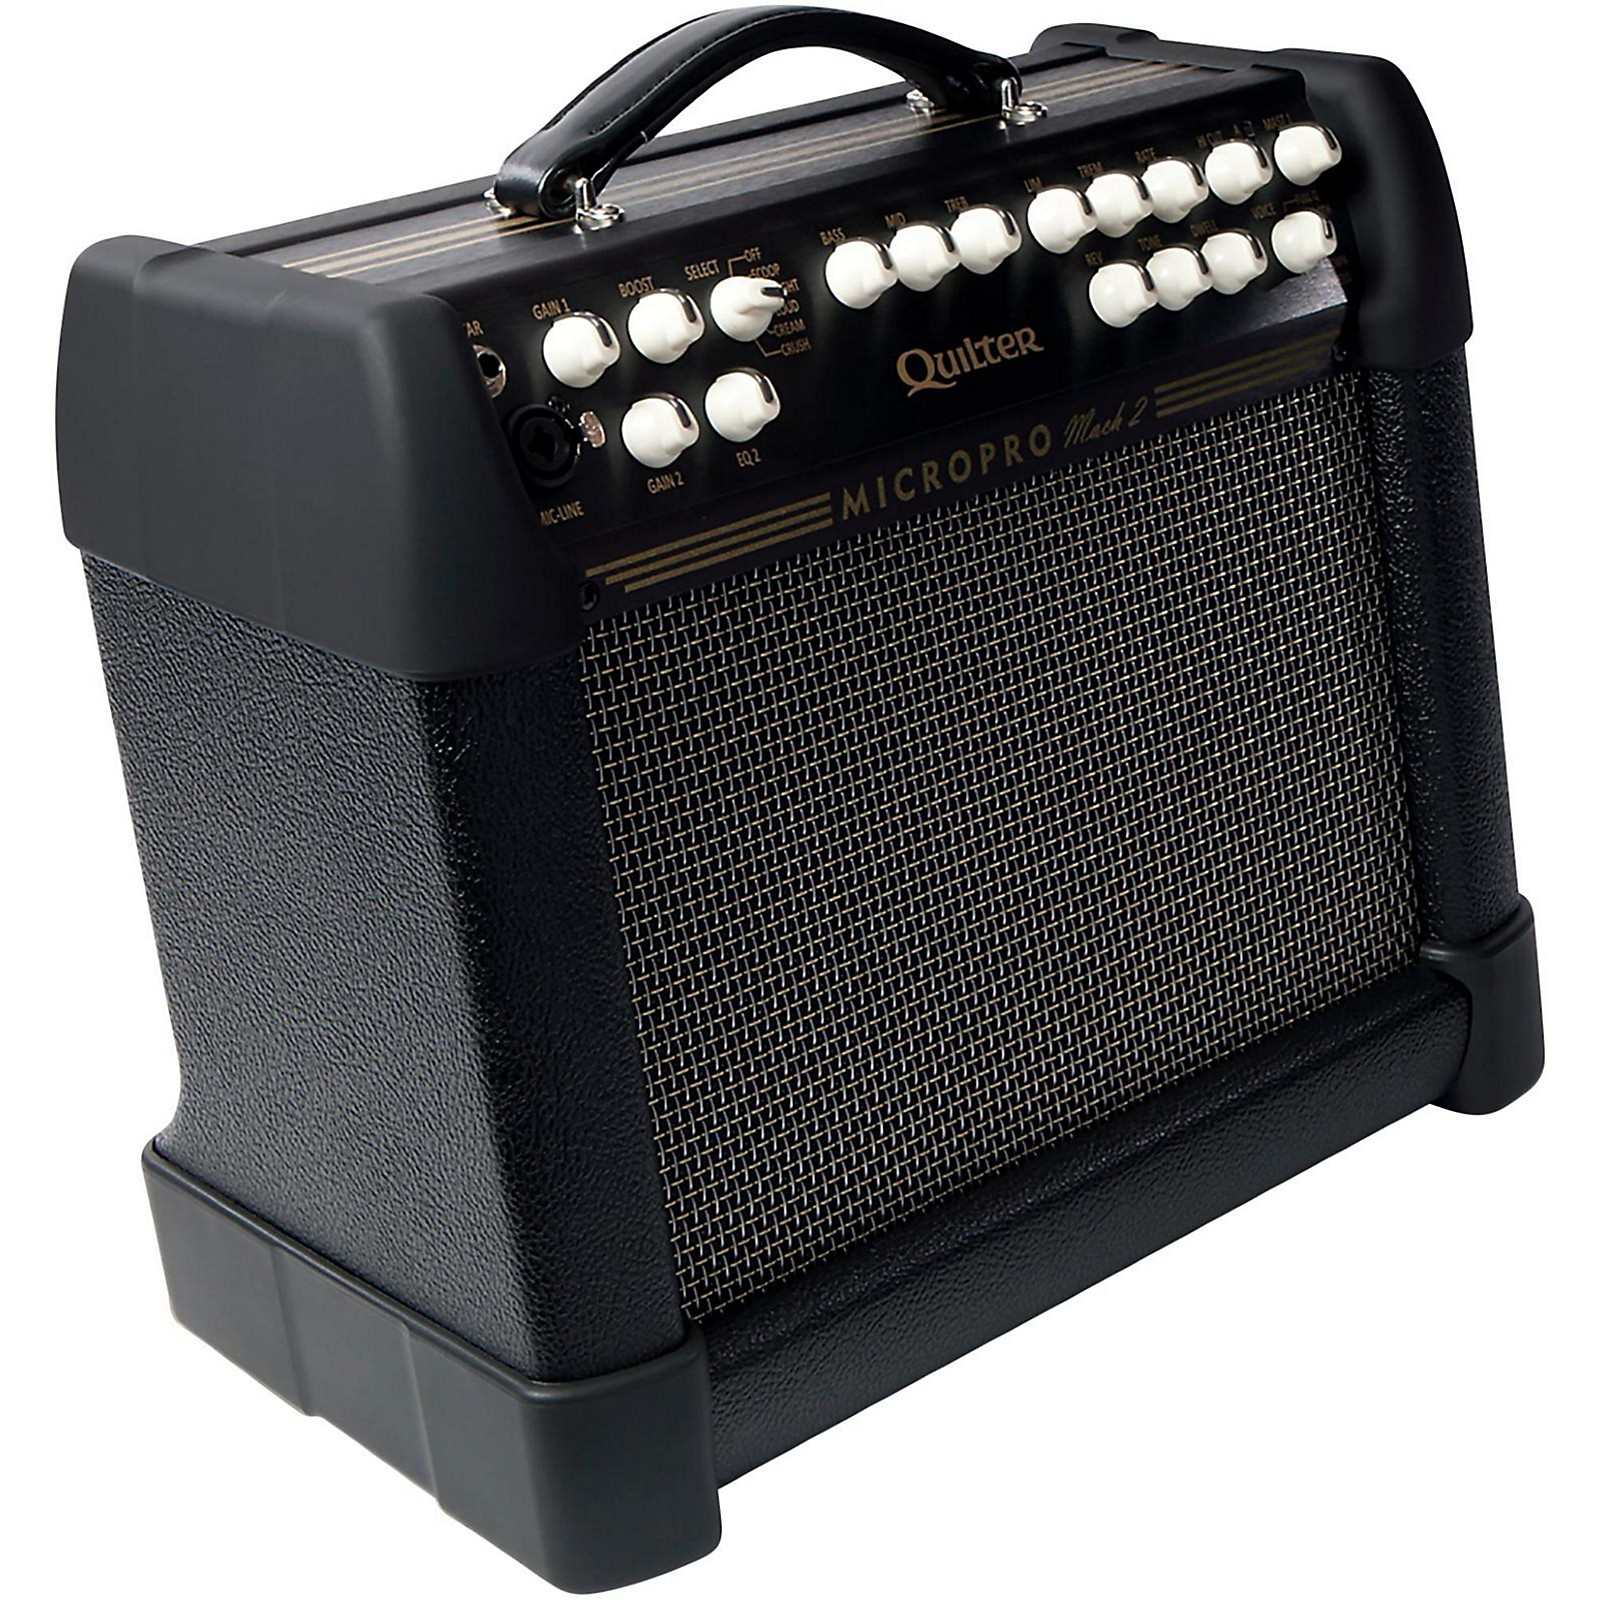 Quilter Labs Mach2-COMBO-8 Micro Pro 200 Mach 2 200W 1x8 Guitar Combo Amp